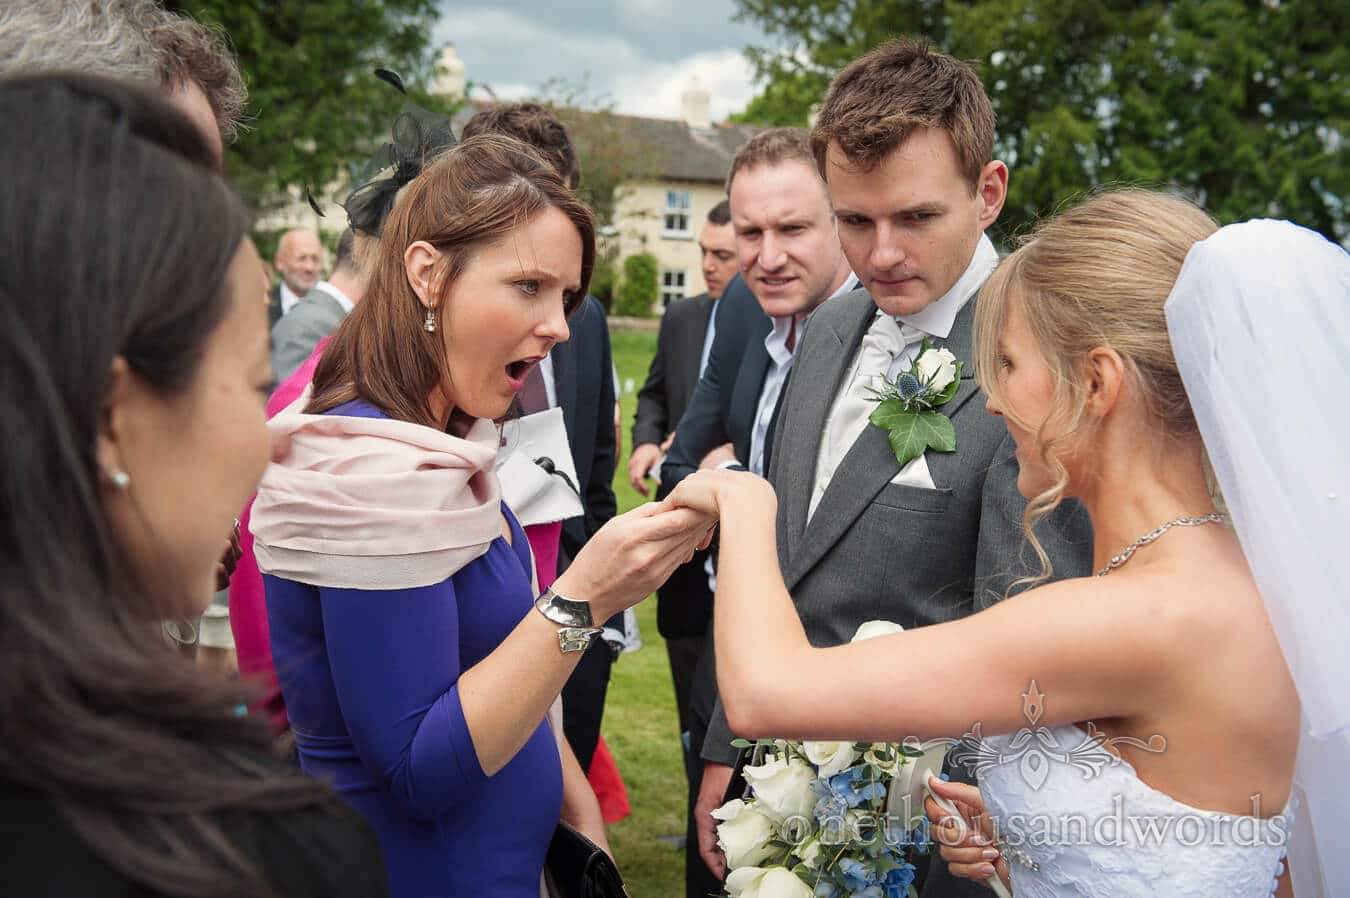 Wedding guest reaction to wedding ring at Country Theme Wedding